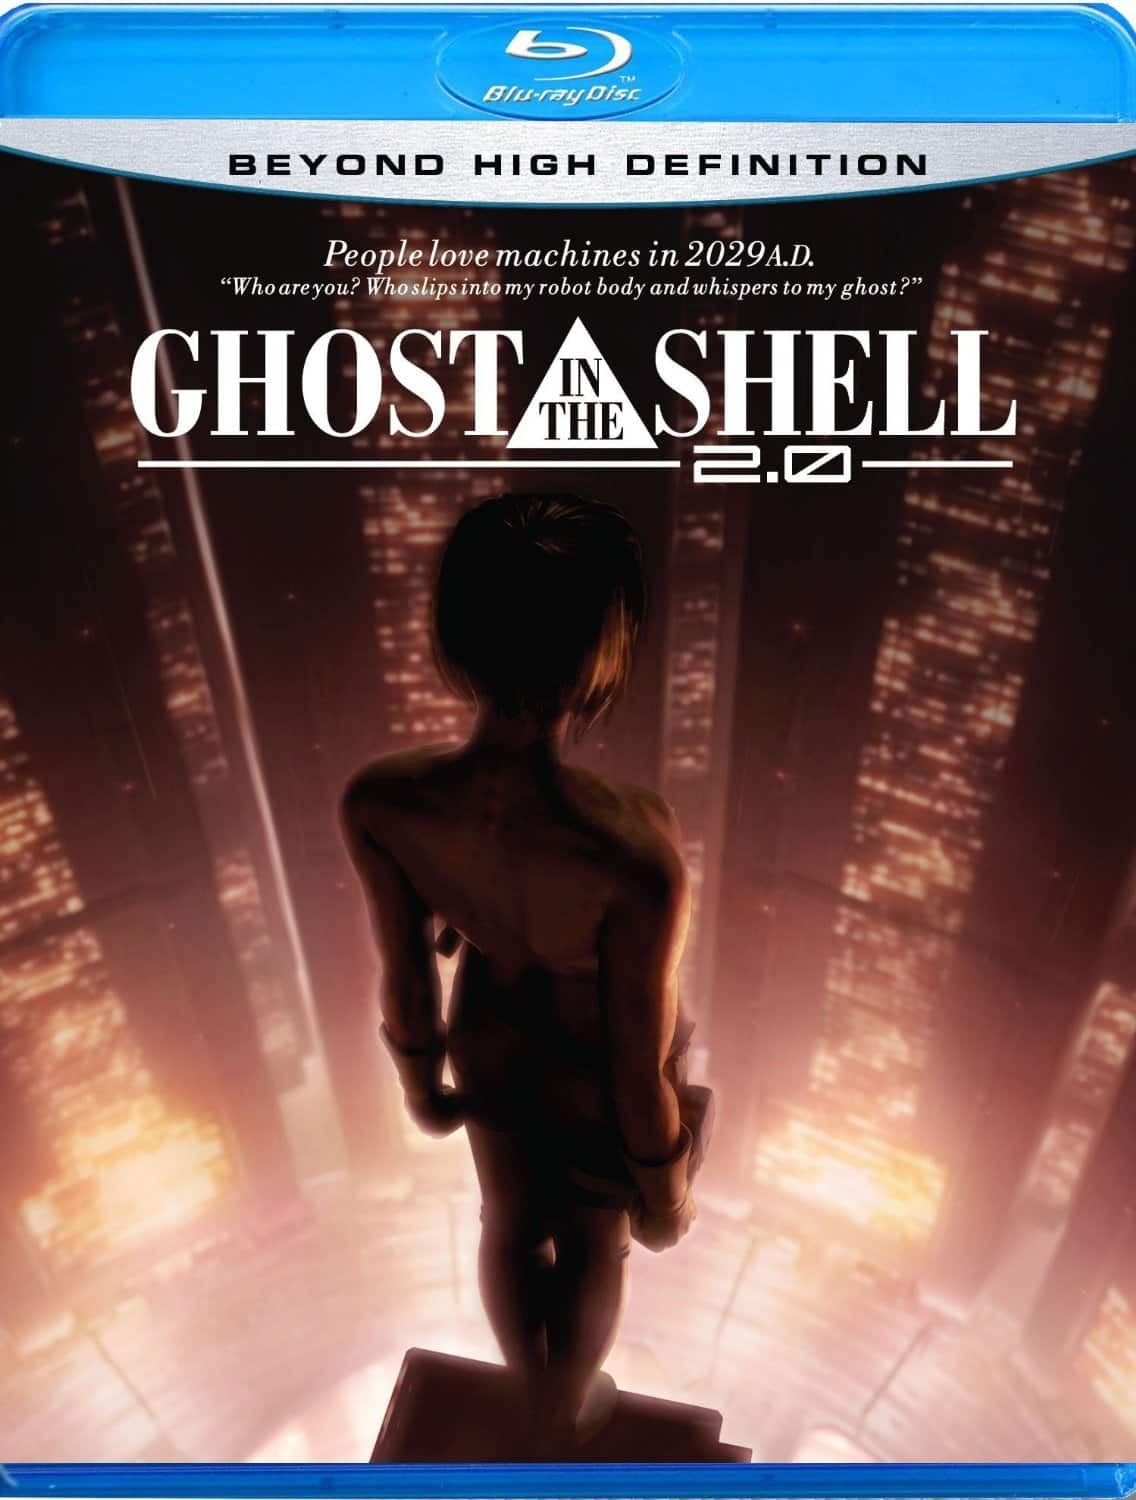 Ghost in the Shell 2.0 (Blu-ray)  $10